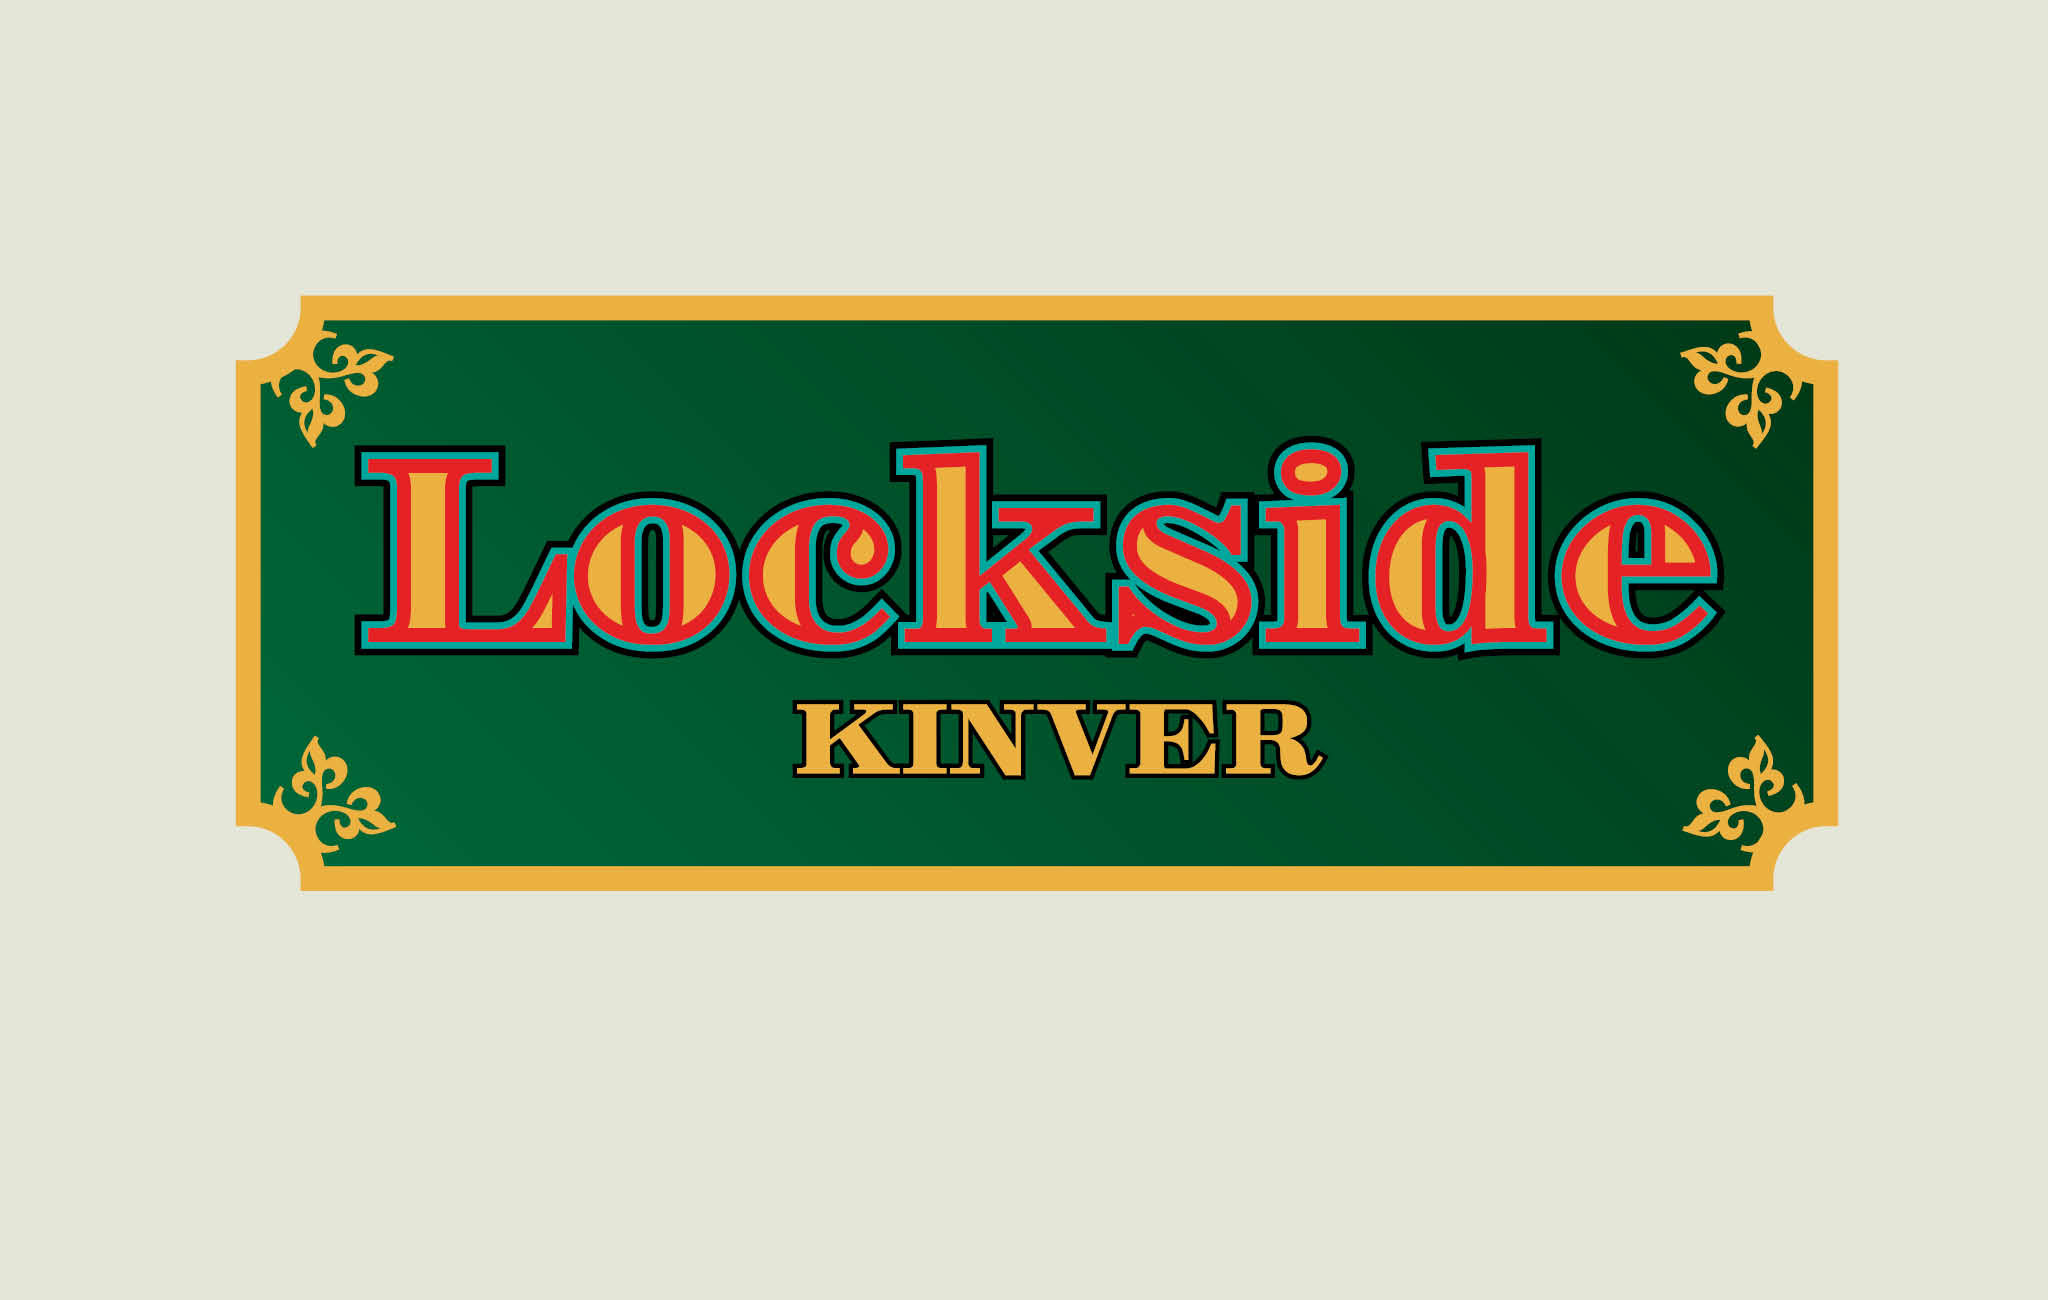 Lockside Kinver brand logo